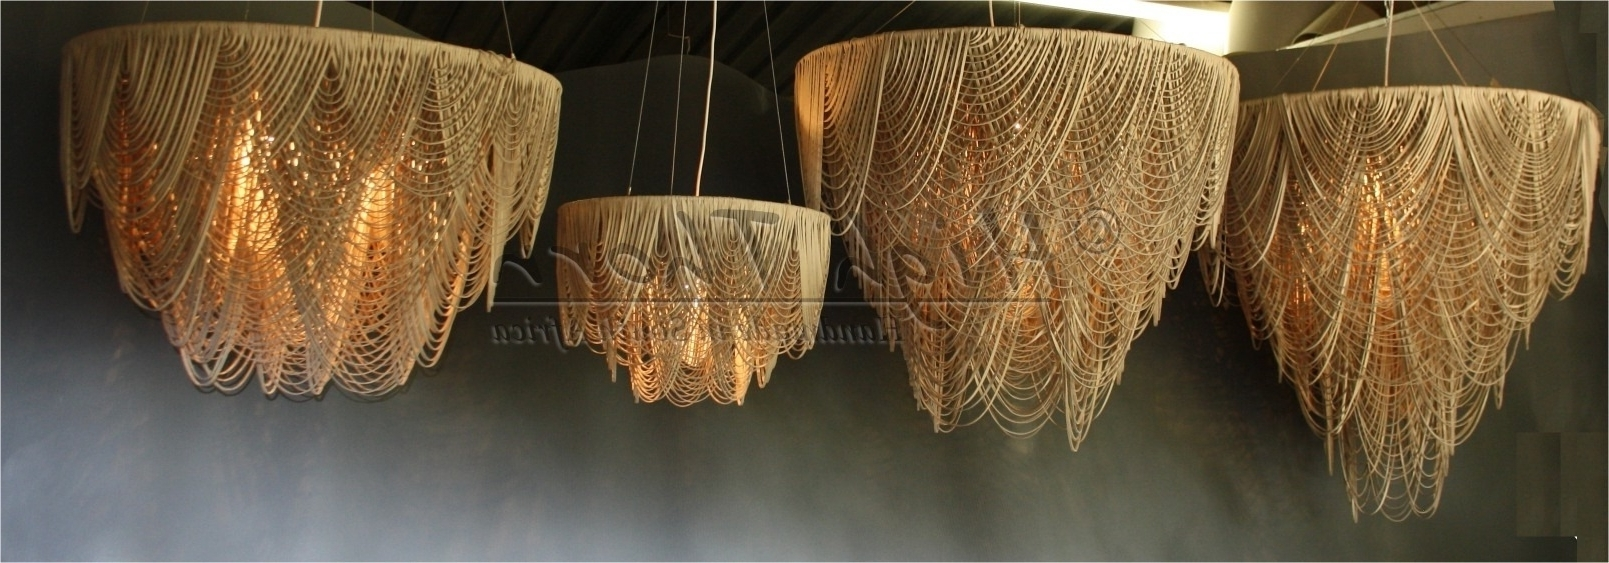 Latest Leather Chandeliers Within High Thorn – Handmade In South Africa – Lighting, Furniture, Home (View 6 of 20)